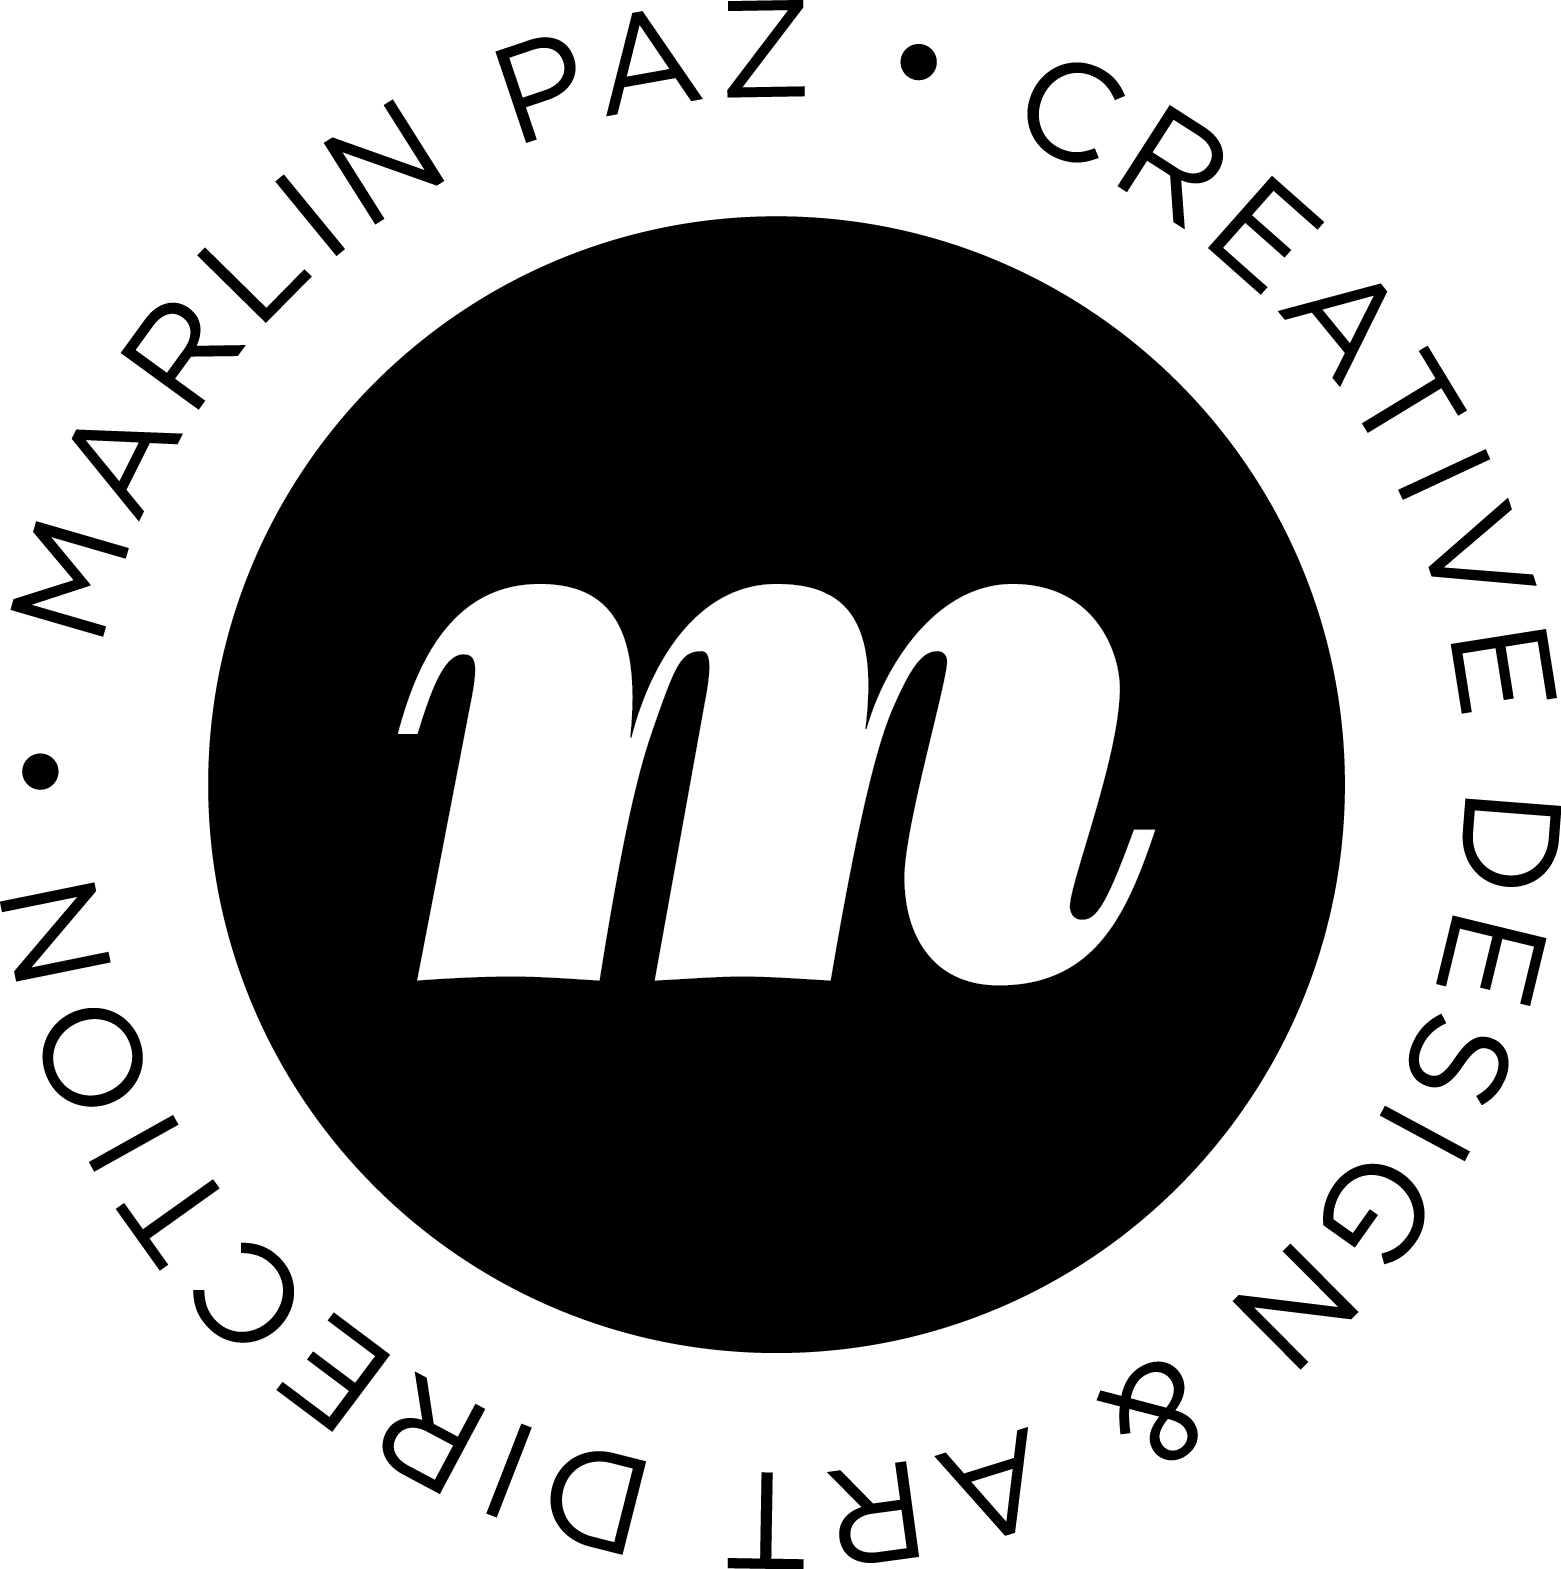 Marlin Paz - Graphic Designer - Web Design, Printed Design, Logos, Corporate Image, Photography - Melbourne, Australia